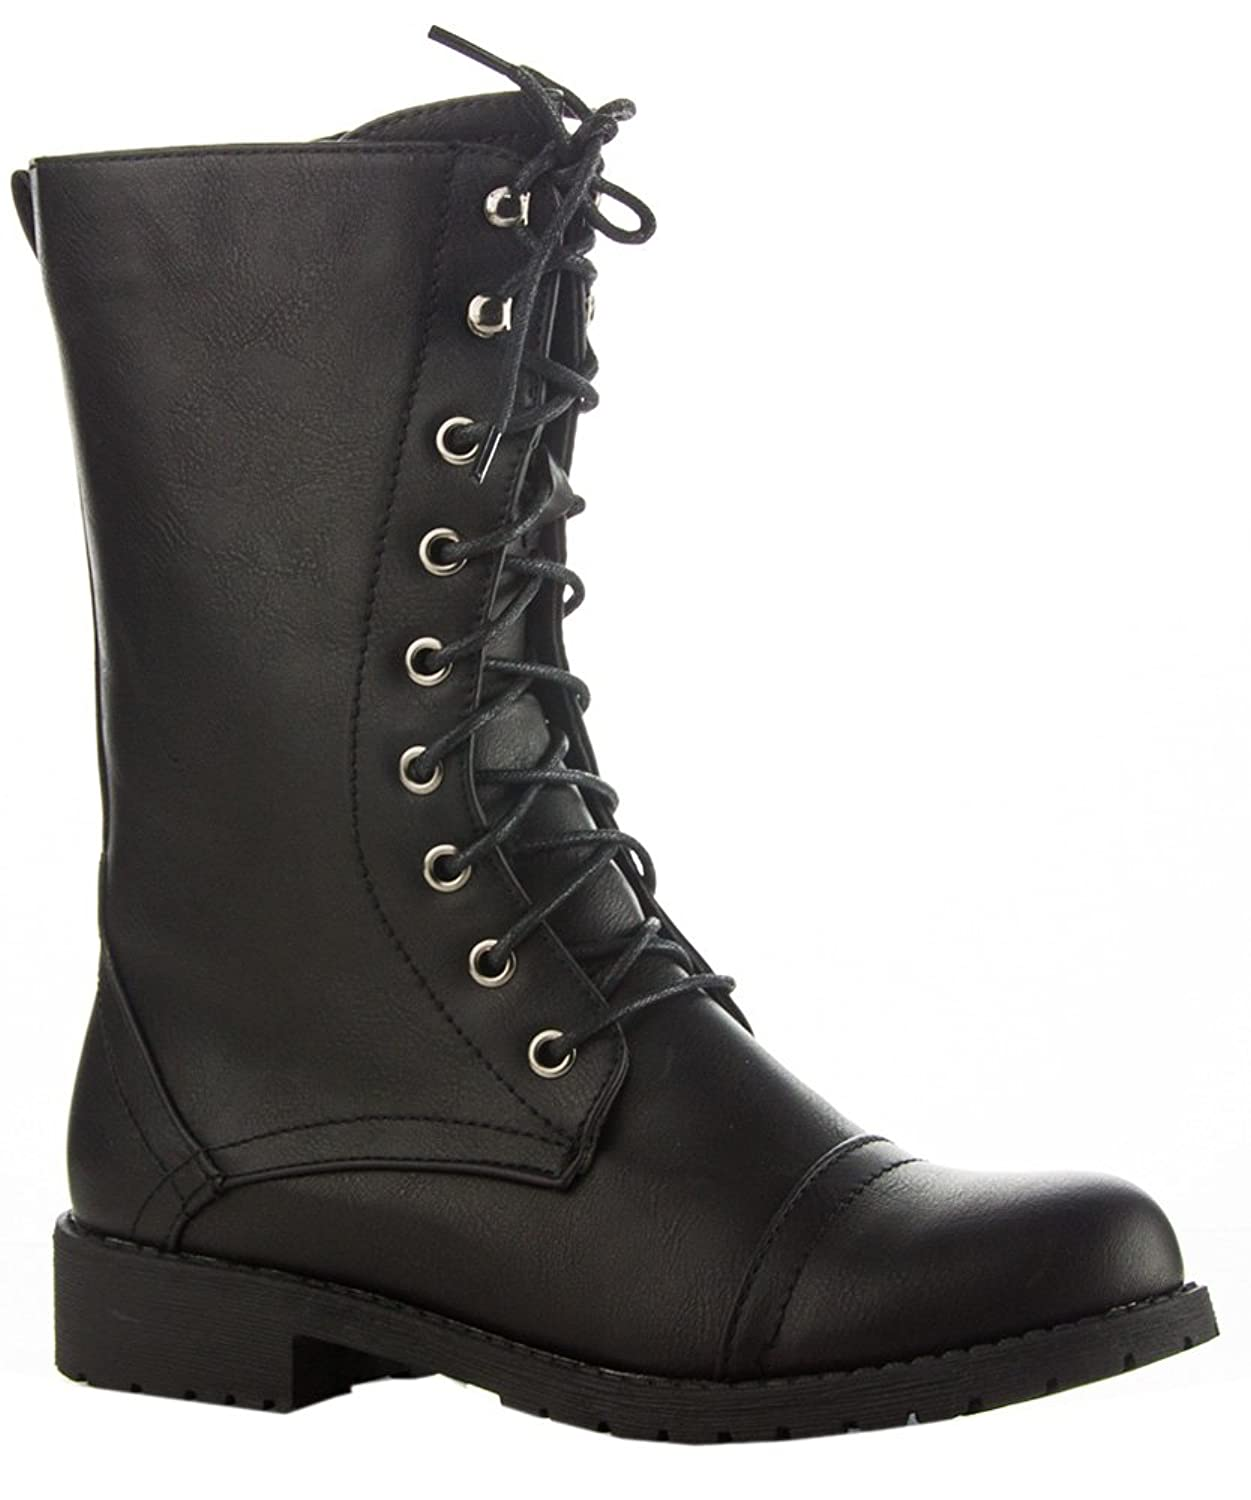 ROF Women's Lug Heel Ankle to Mid Calf Booties Zipper Closure Combat Military Motorcycle Boots